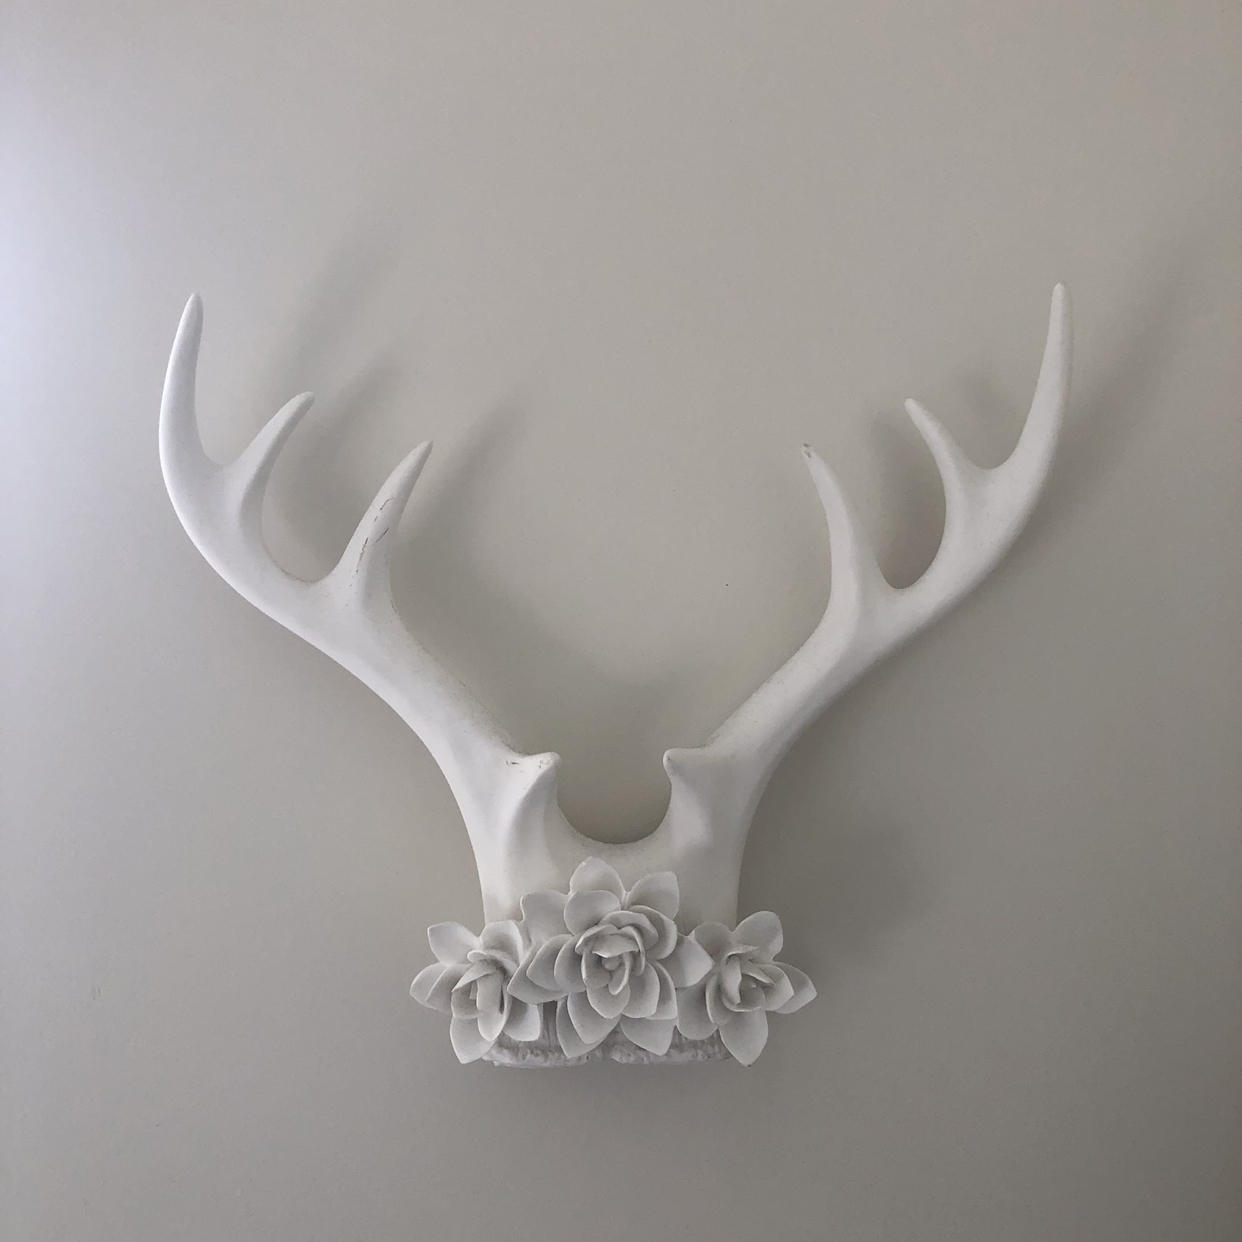 Widely Used Metal Wall Decor For Bathroom At Hobby Lobby Modern Décor Inside Wall Décor By Latitude Run (View 17 of 20)